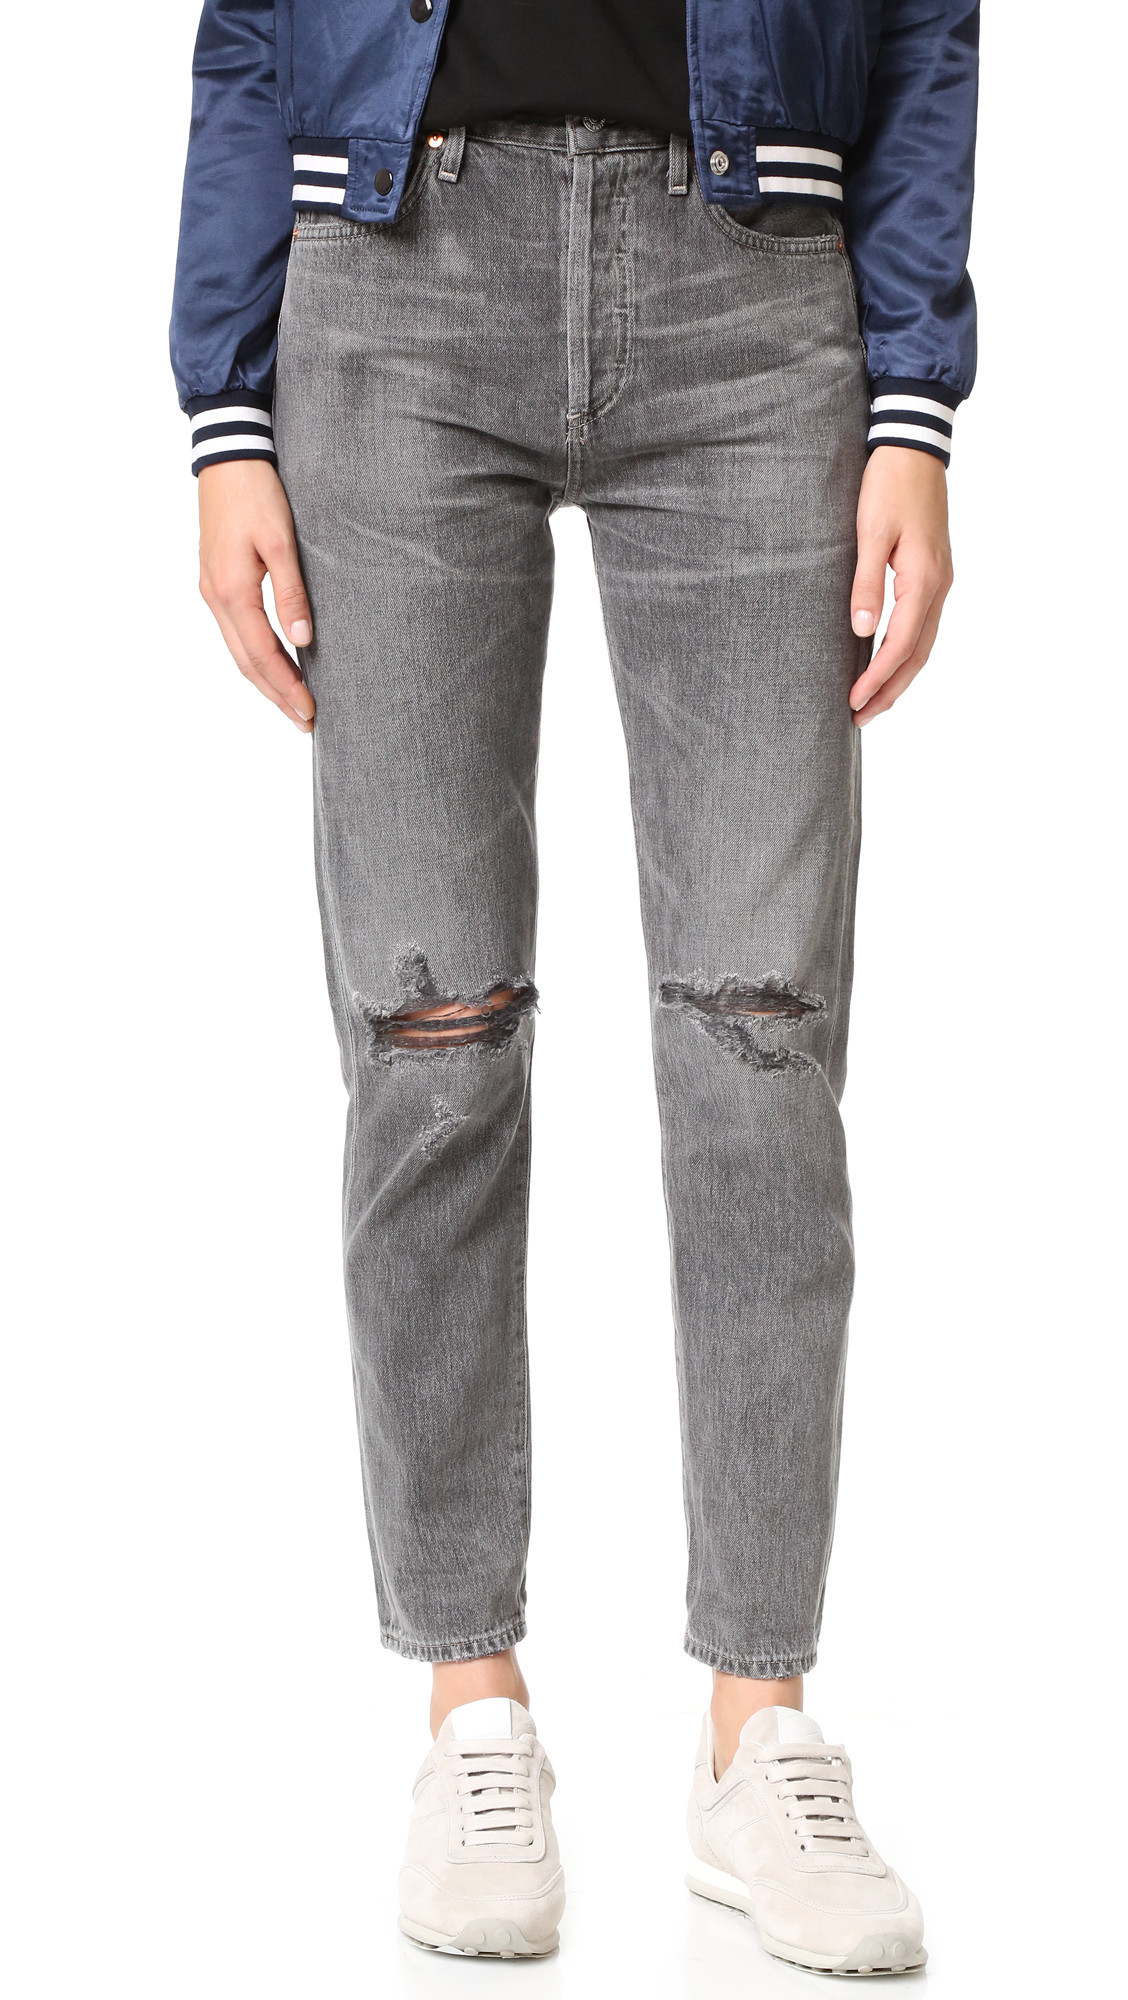 b39a5e2a406c Citizens Of Humanity Liya High Rise Jeans - Extreme